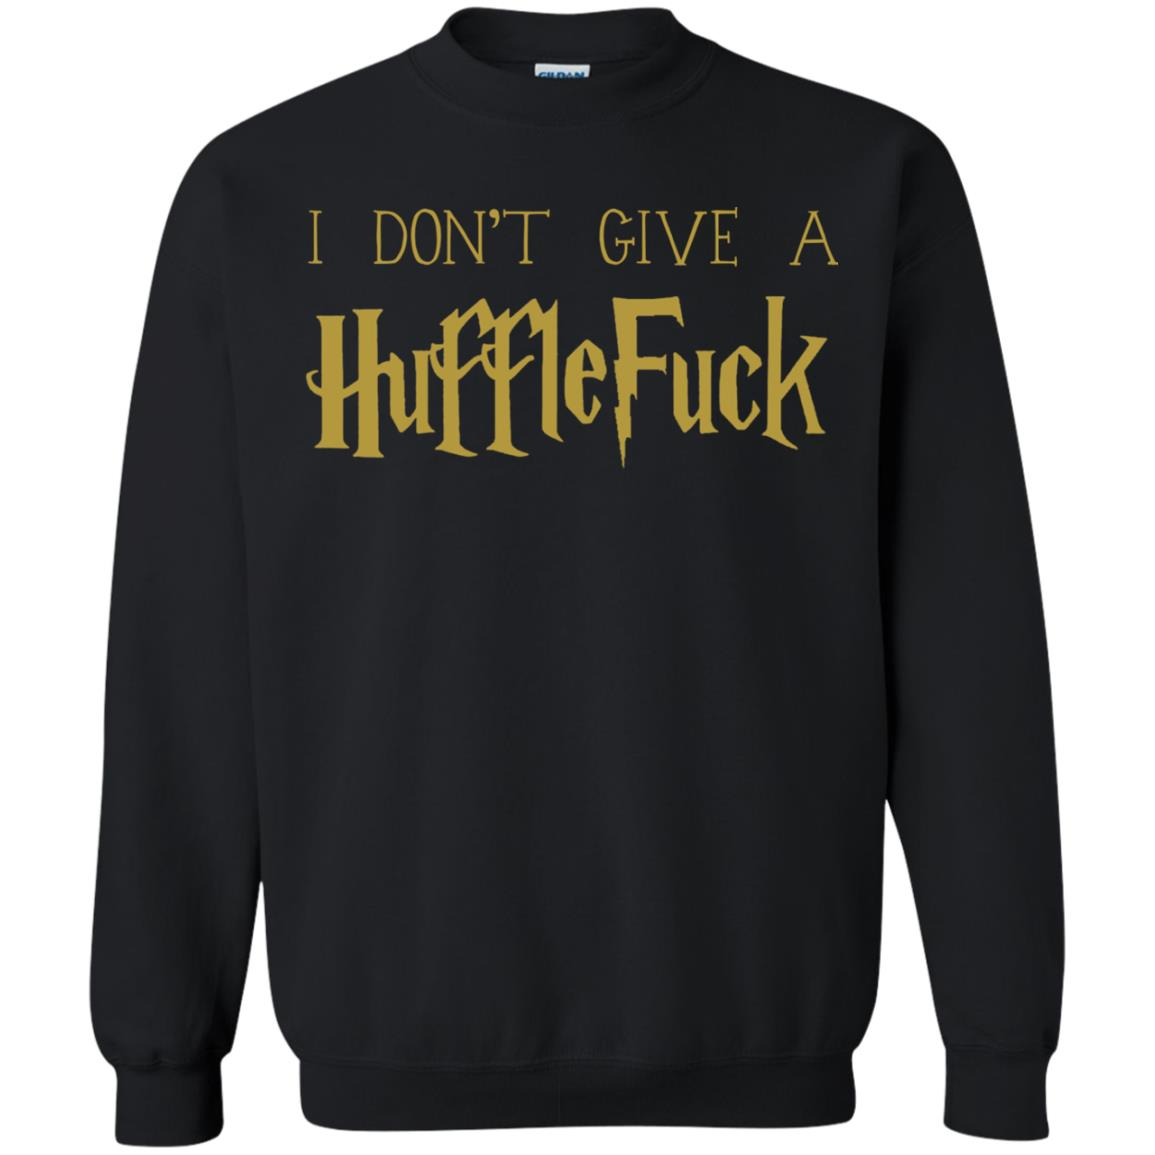 image 705 - Harry Potter: I don't give a Hufflefuck shirt & sweatshirt